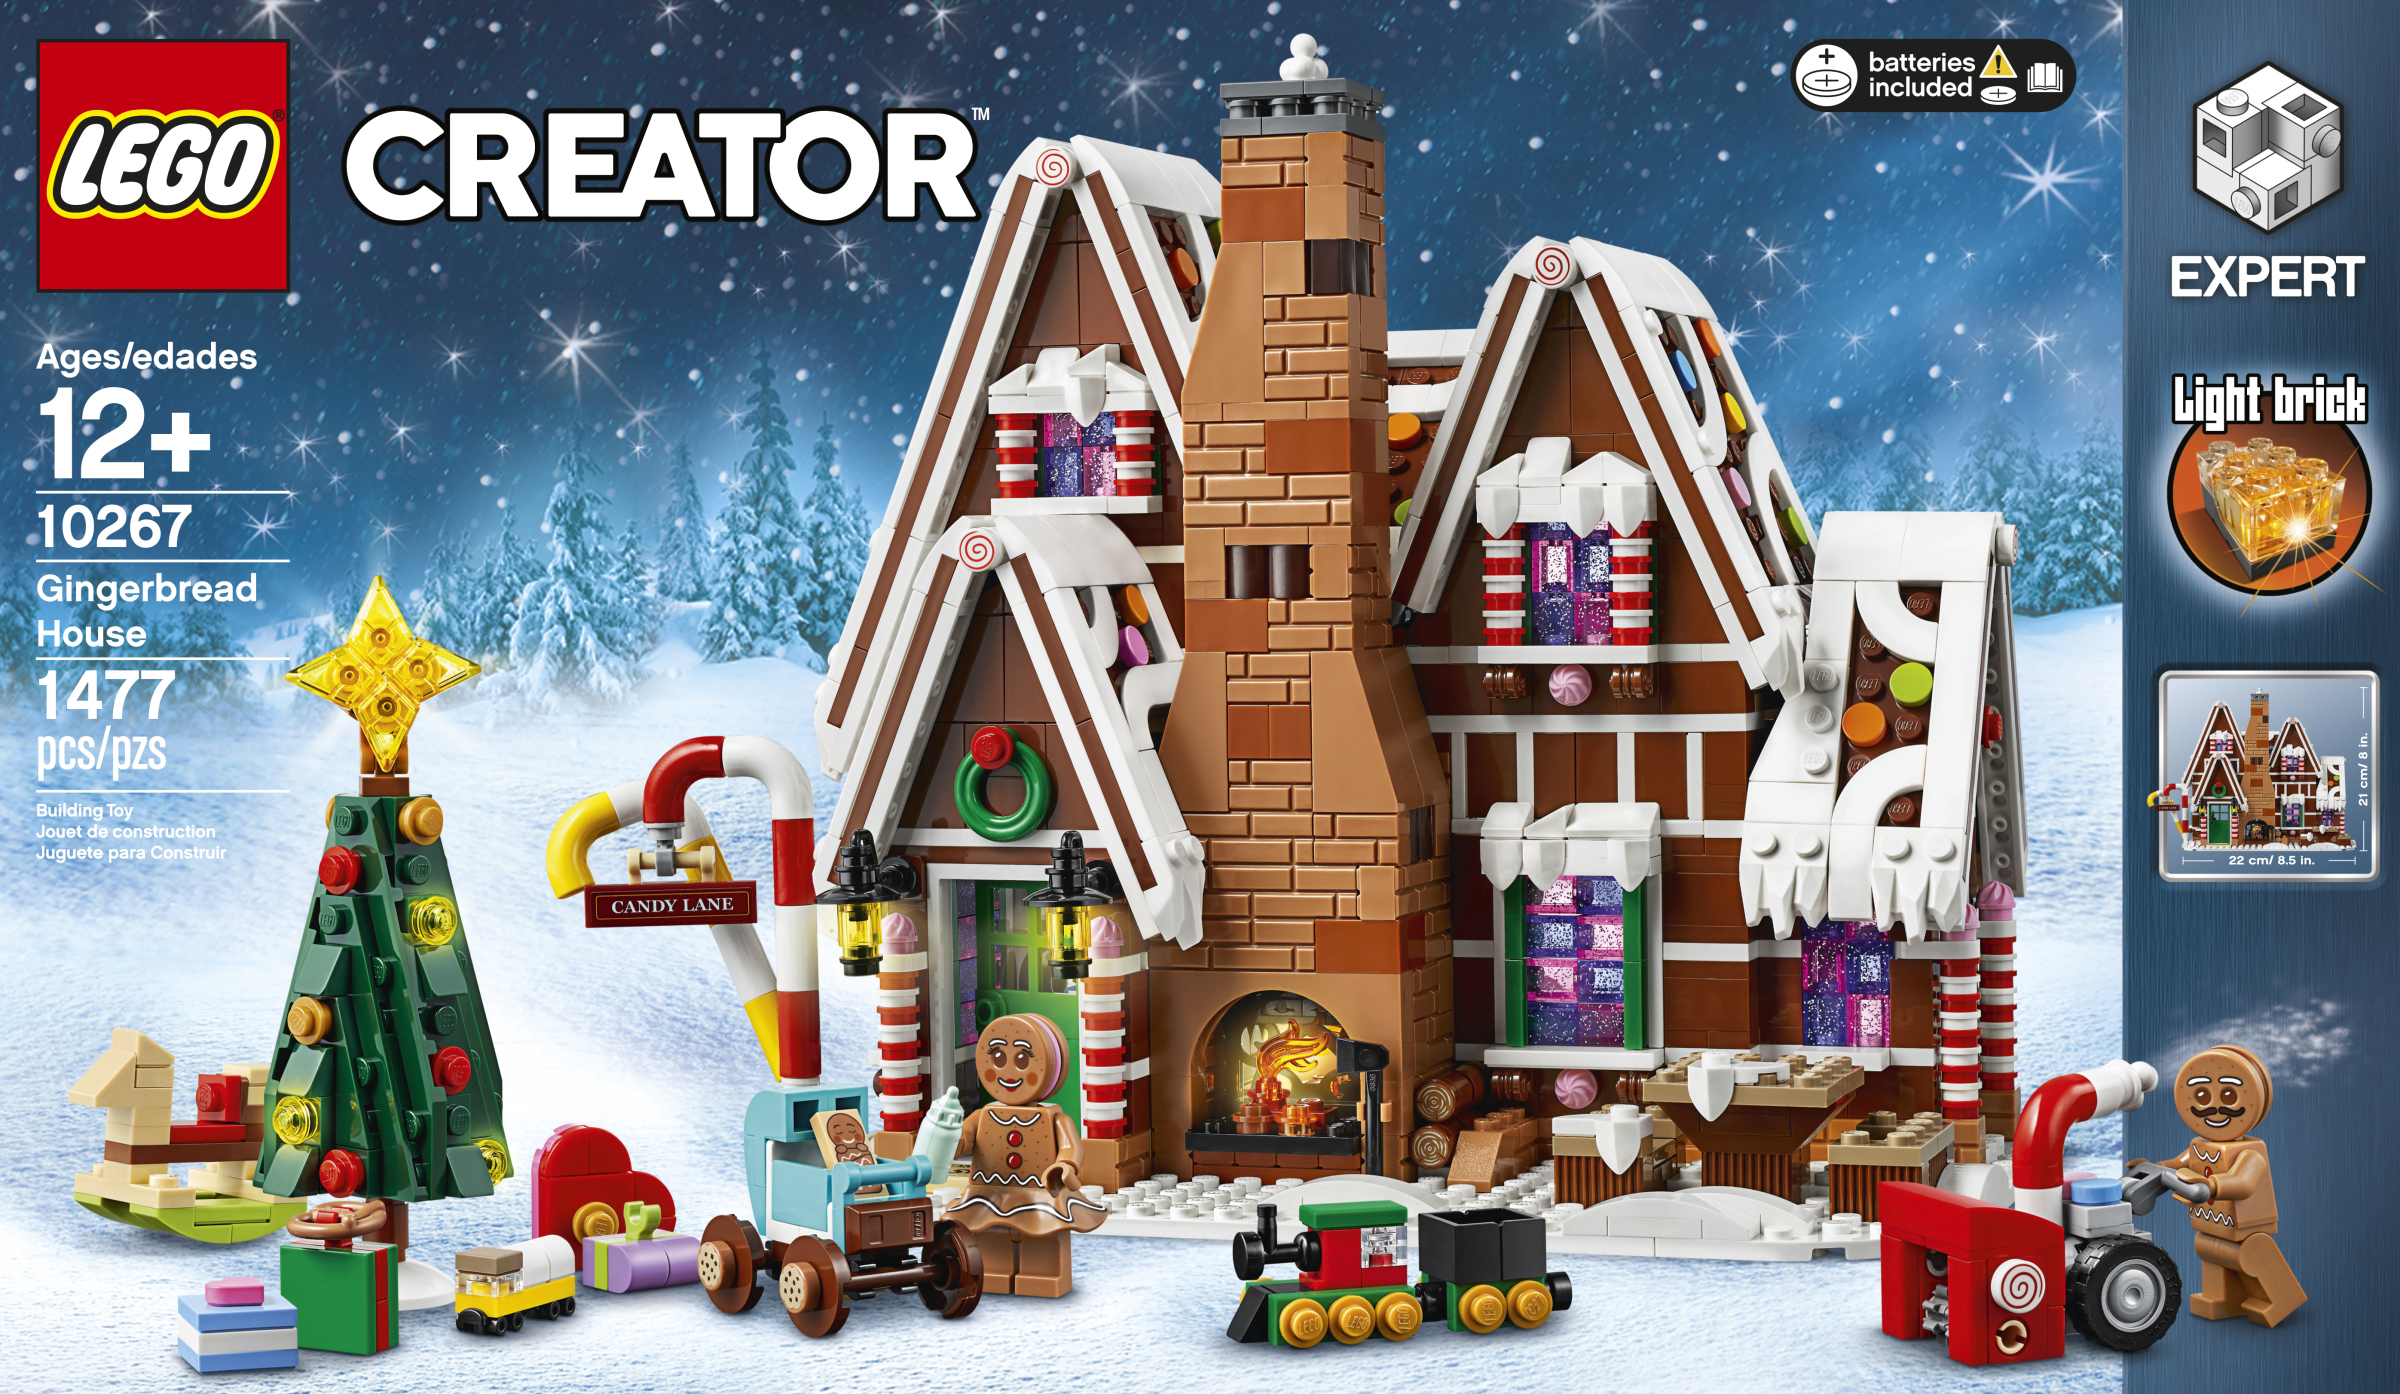 Lego Christmas Set 2019.This Delicious Gingerbread House Is This Year S Winter